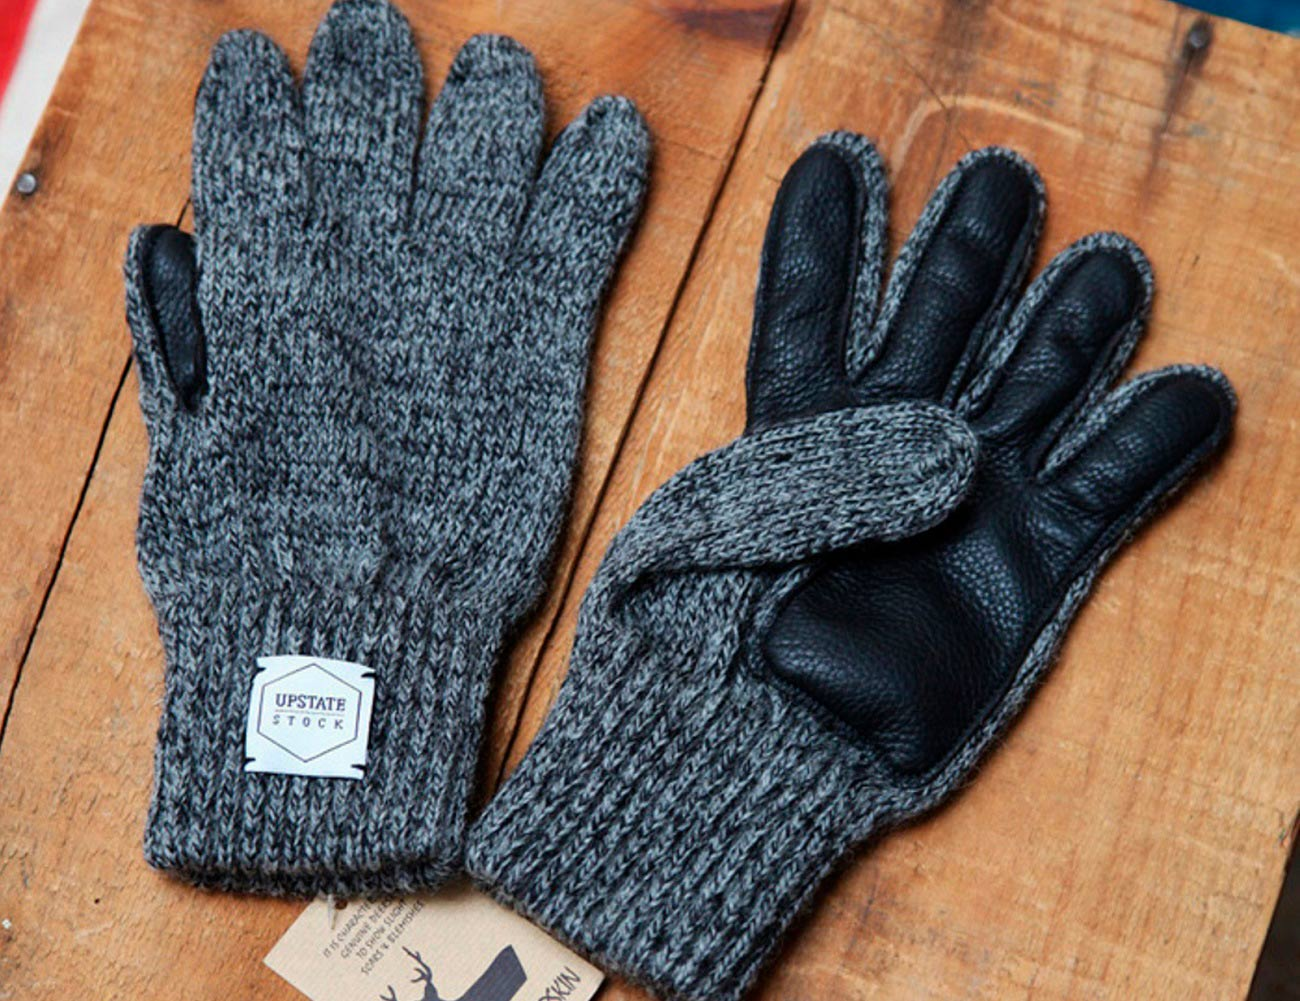 Wool & Deerskin Gloves by Upstate Stock